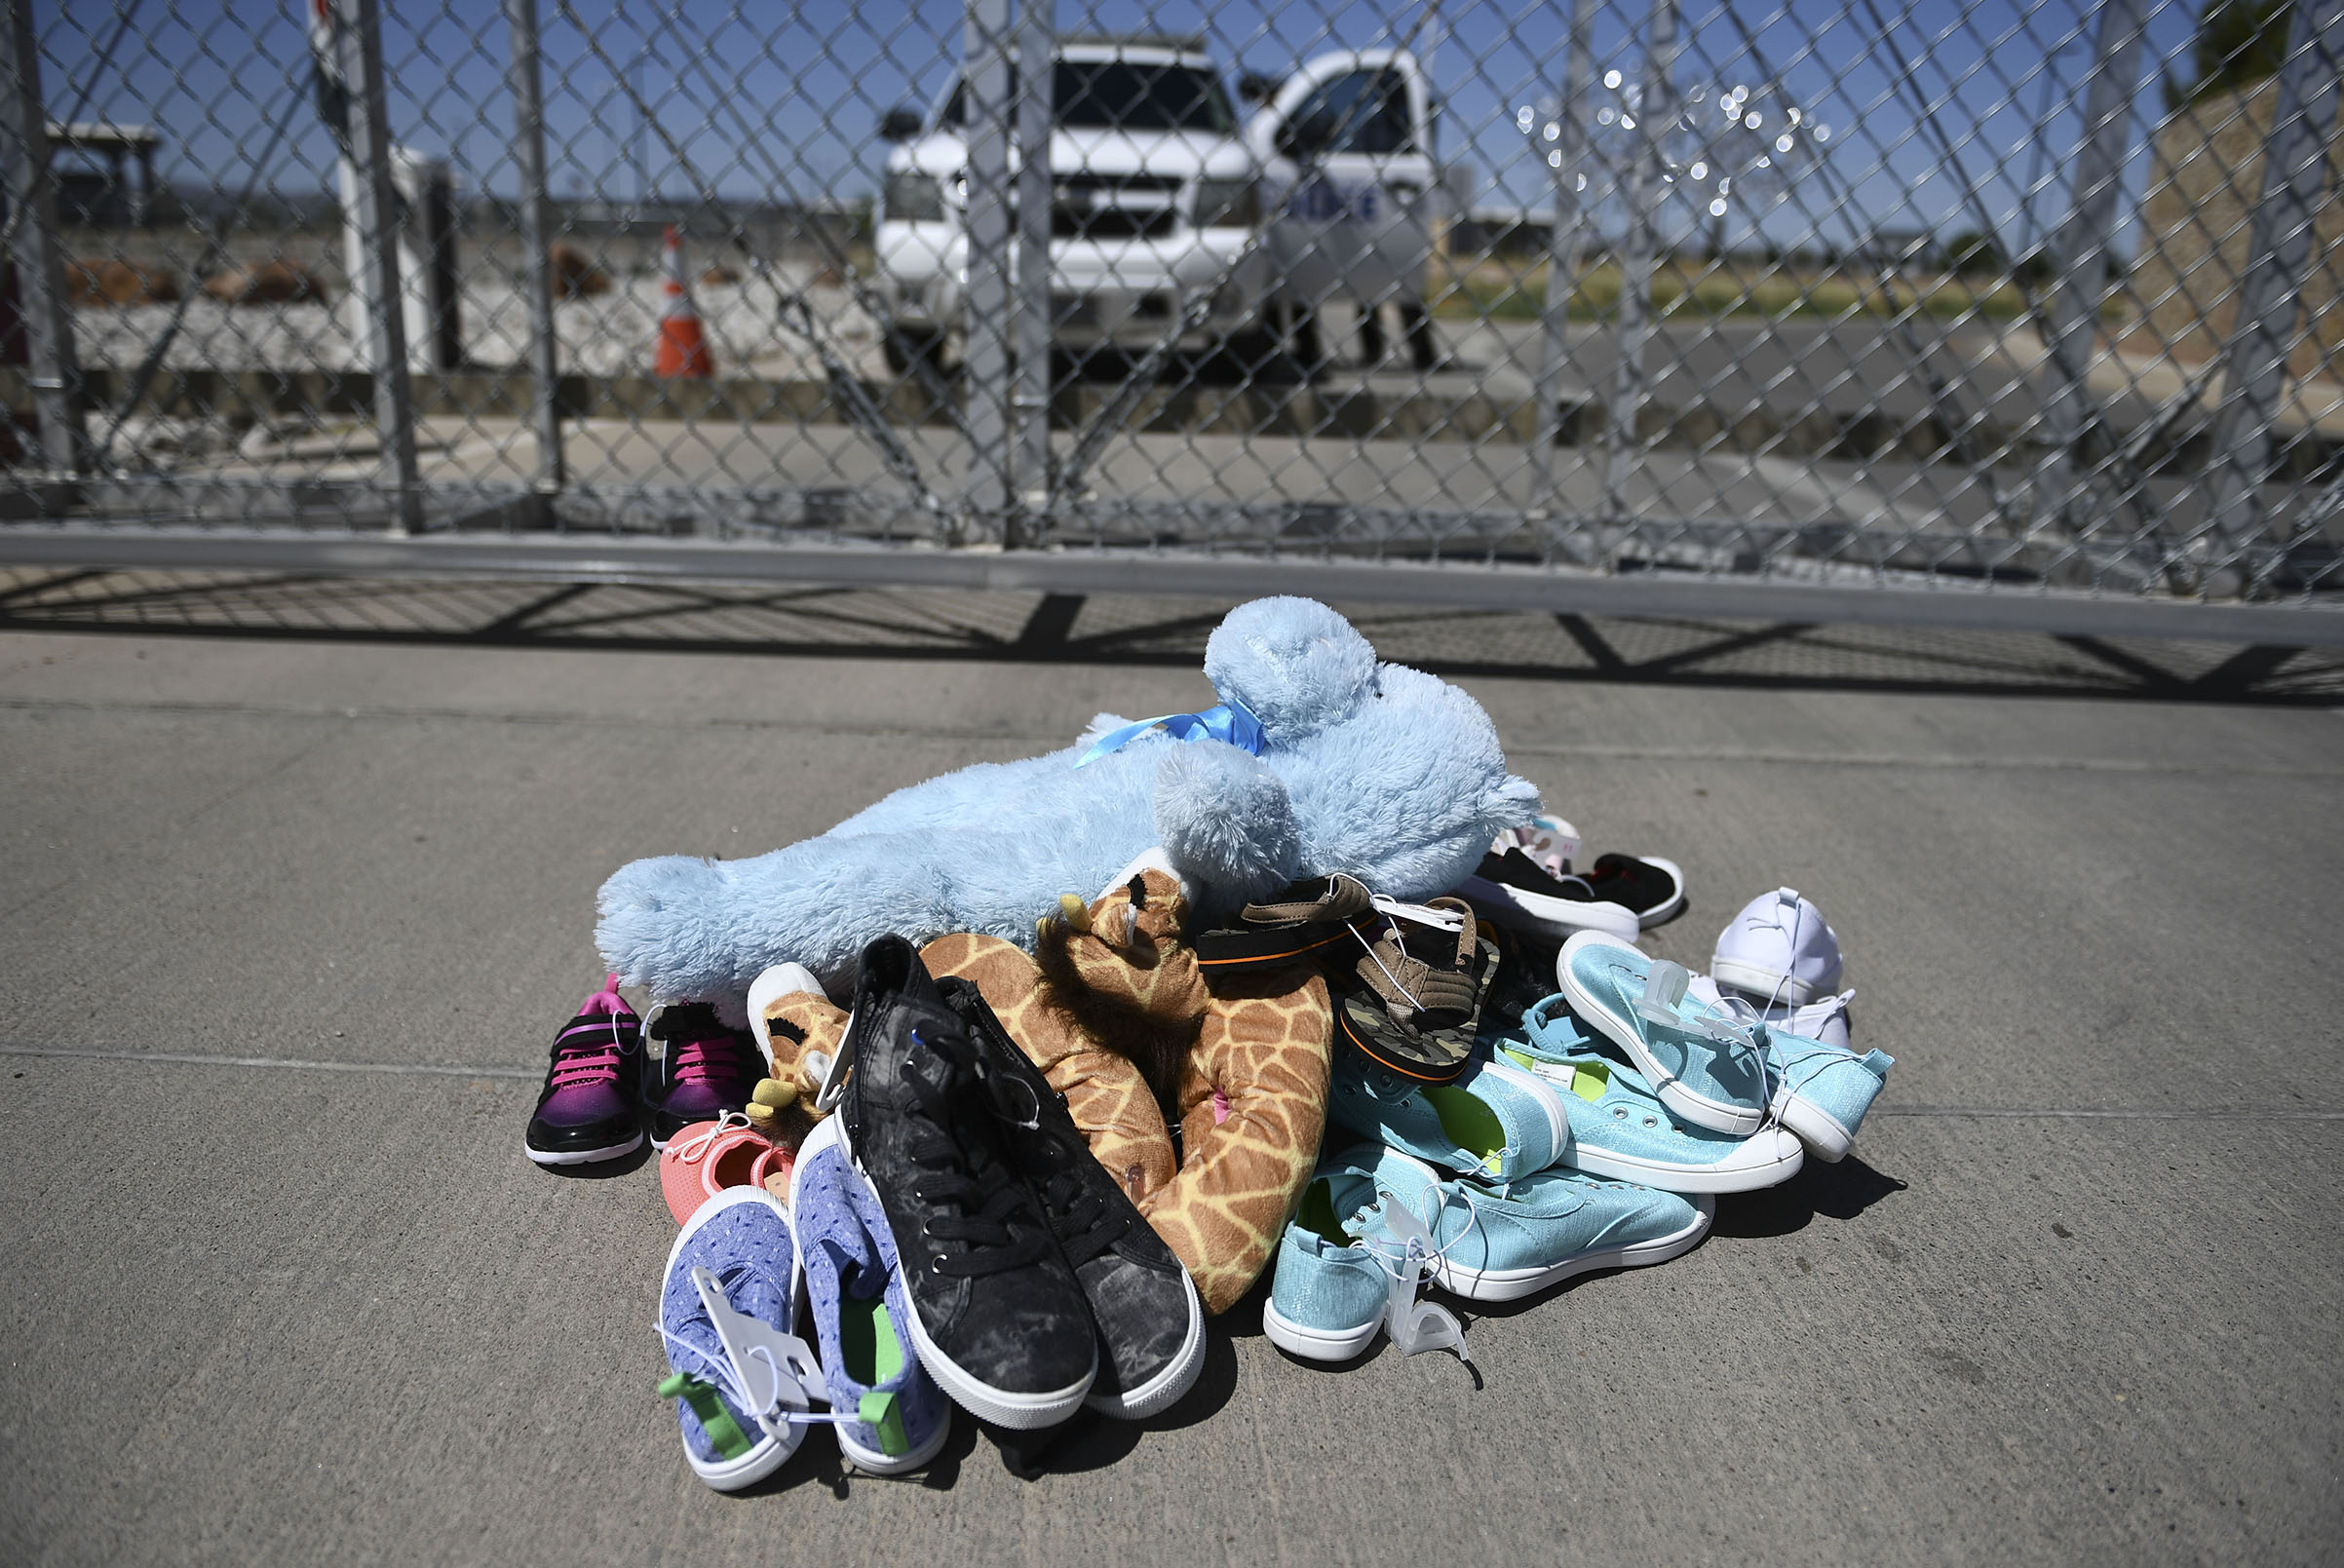 Shoes and toys for immigrant children are left at the Tornillo Port of Entry near El Paso, Texas, June 21, 2018.